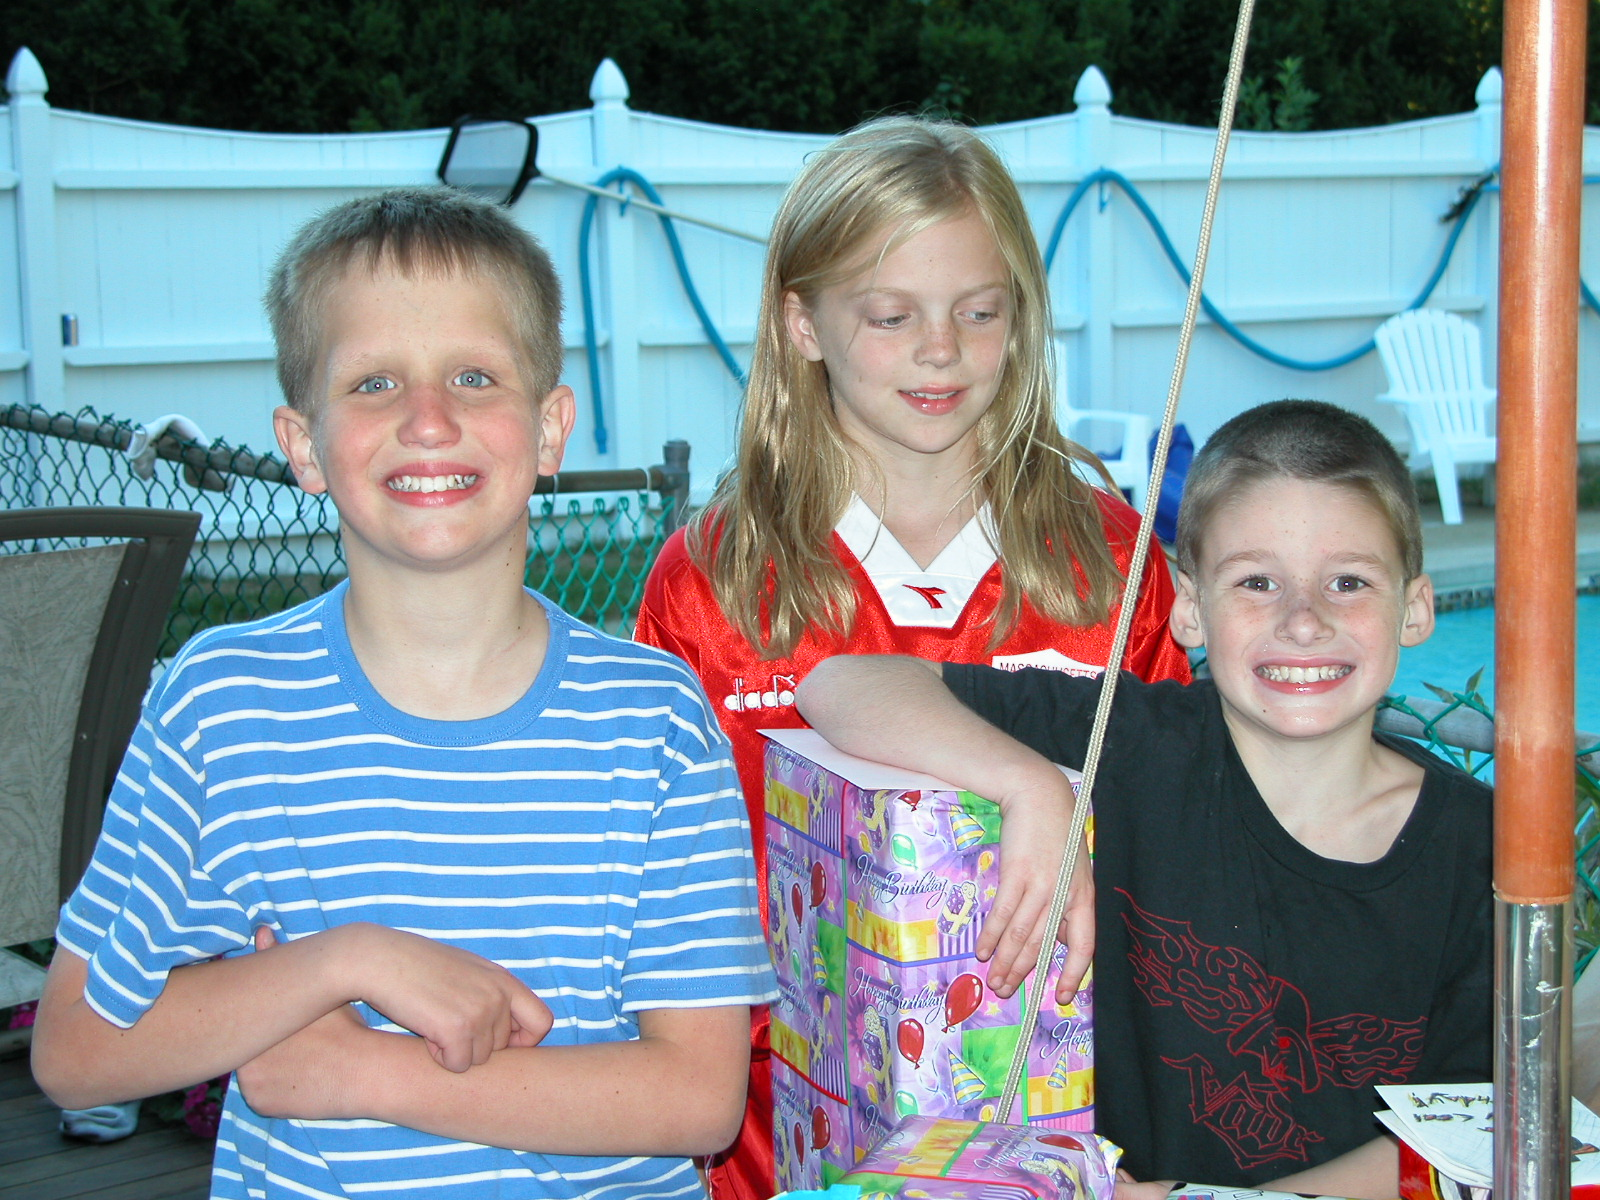 Here's a photo of the birthday kids, Ryan is 11, Jenna is 10 and Jake is 8.